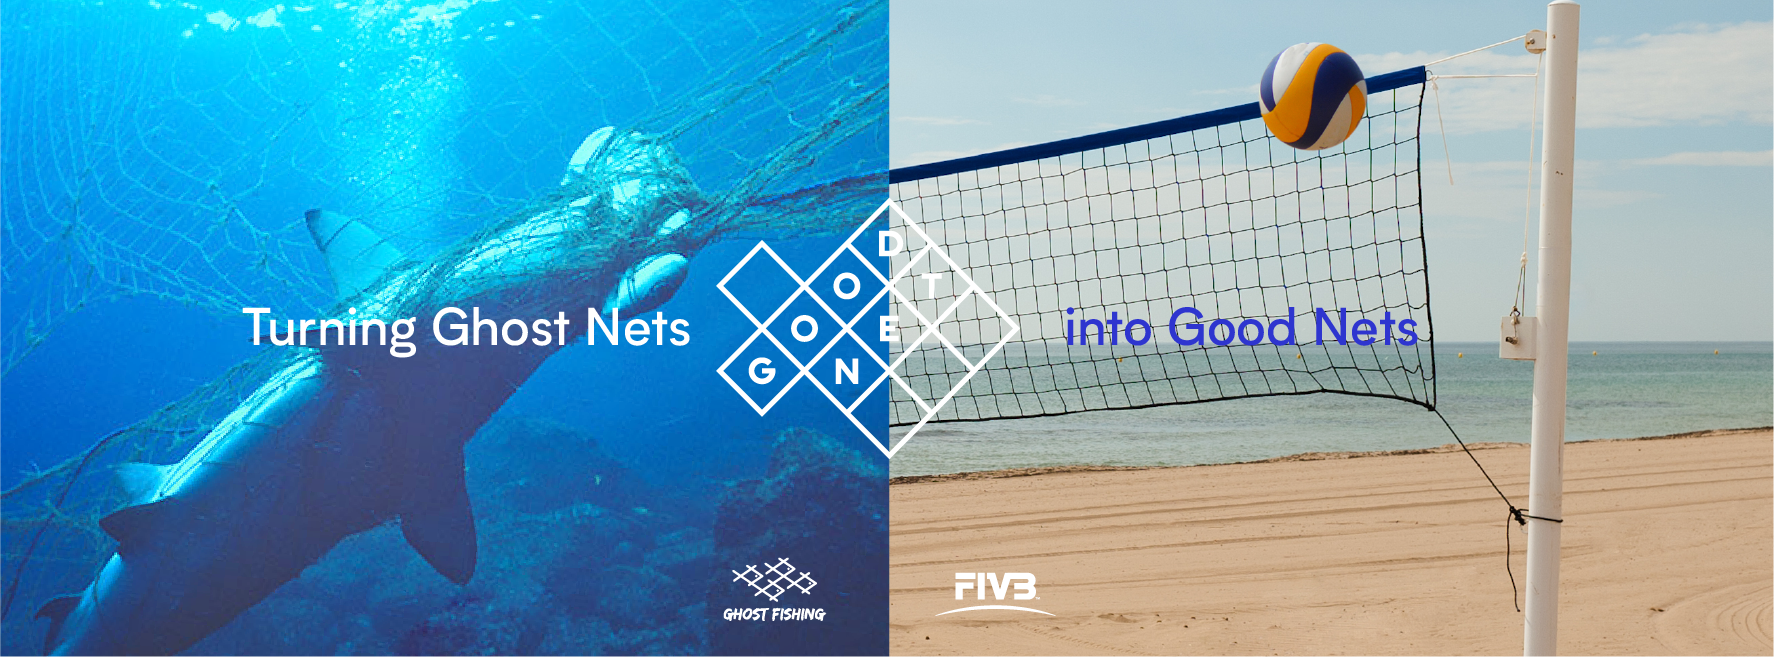 News - The FIVB and Good Net Project support World Water Day